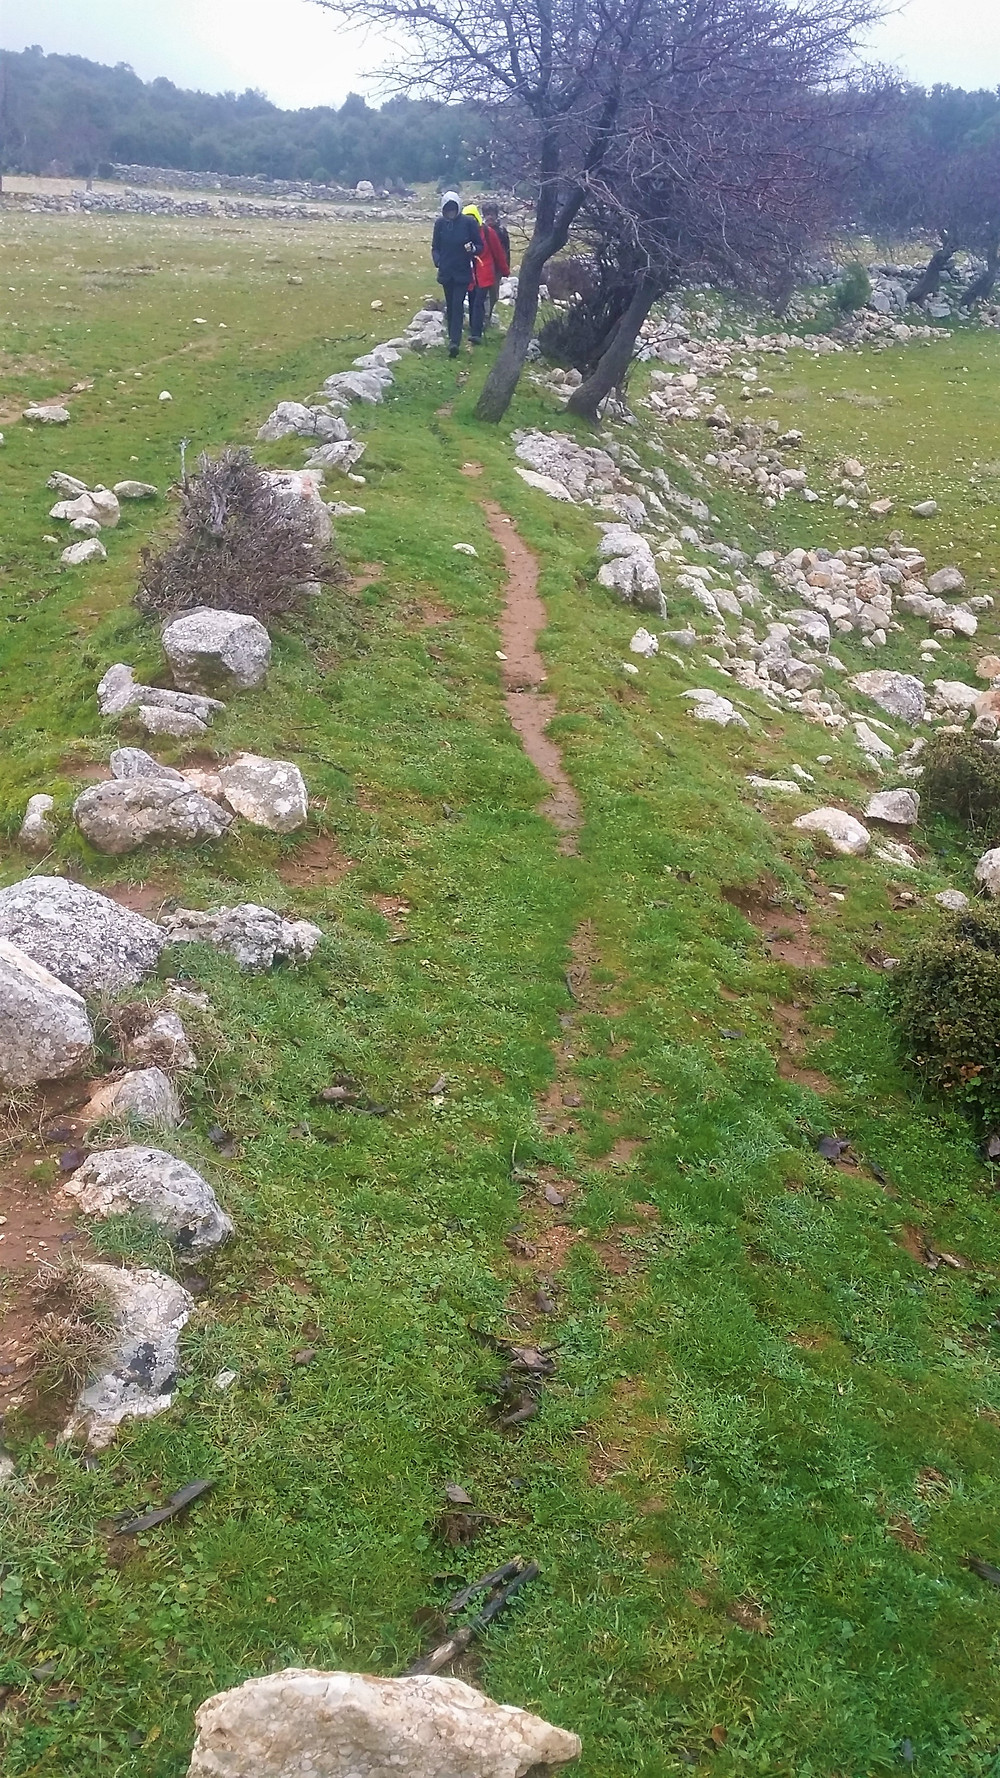 A section of the Lycian Way